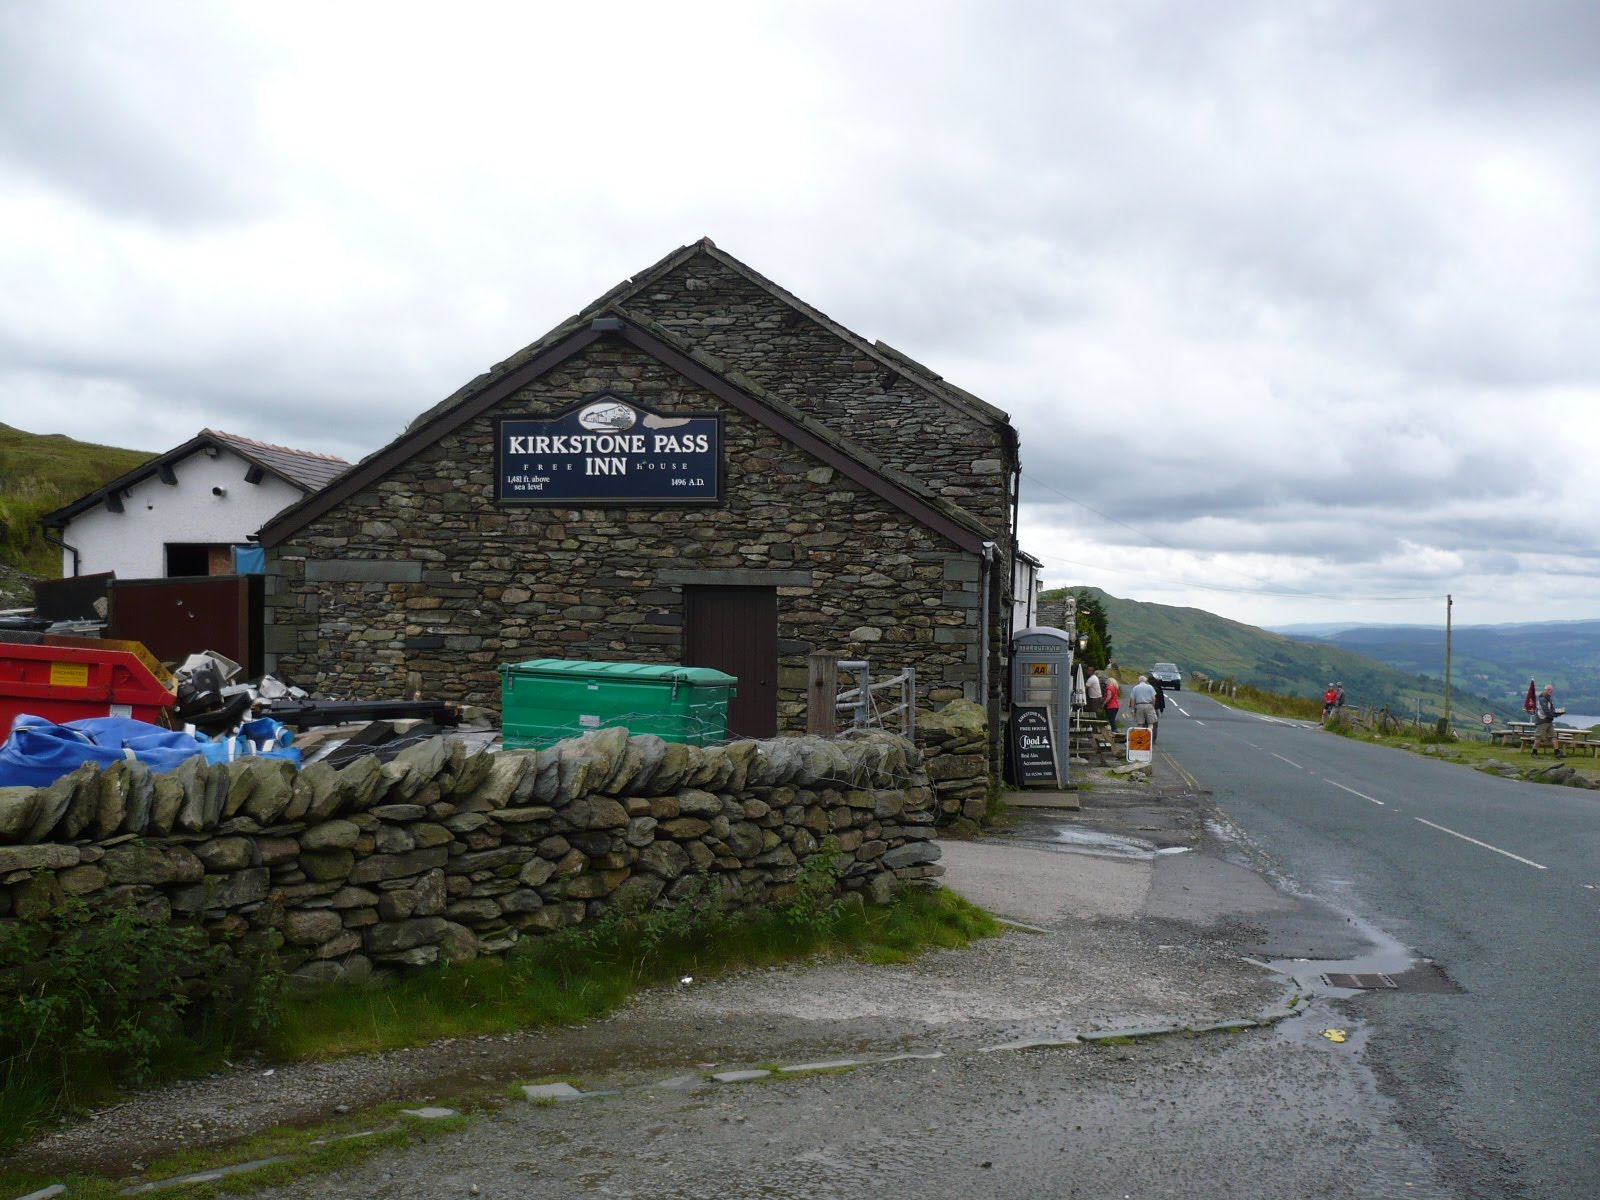 Hartsop hall cottages 171 walking holiday cottages walking - The Kirkstone Pass Was Reached At 12 15 And I Resisted The Temptation To Call In For A Pint Preferring To Eat My Lunch Over The Road Before I Started The